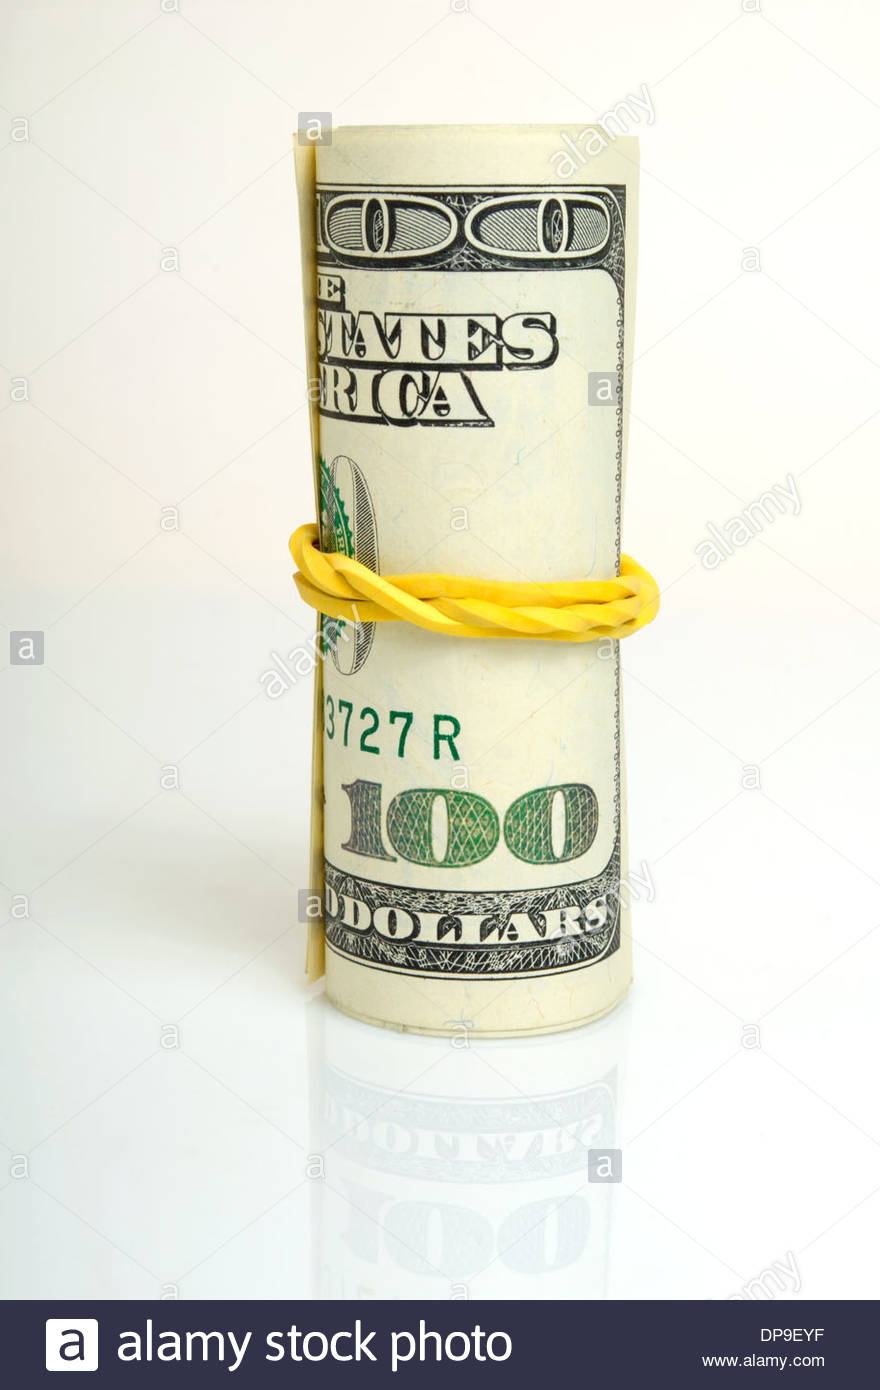 Roll of dollars close-up on a light. - Stock Image